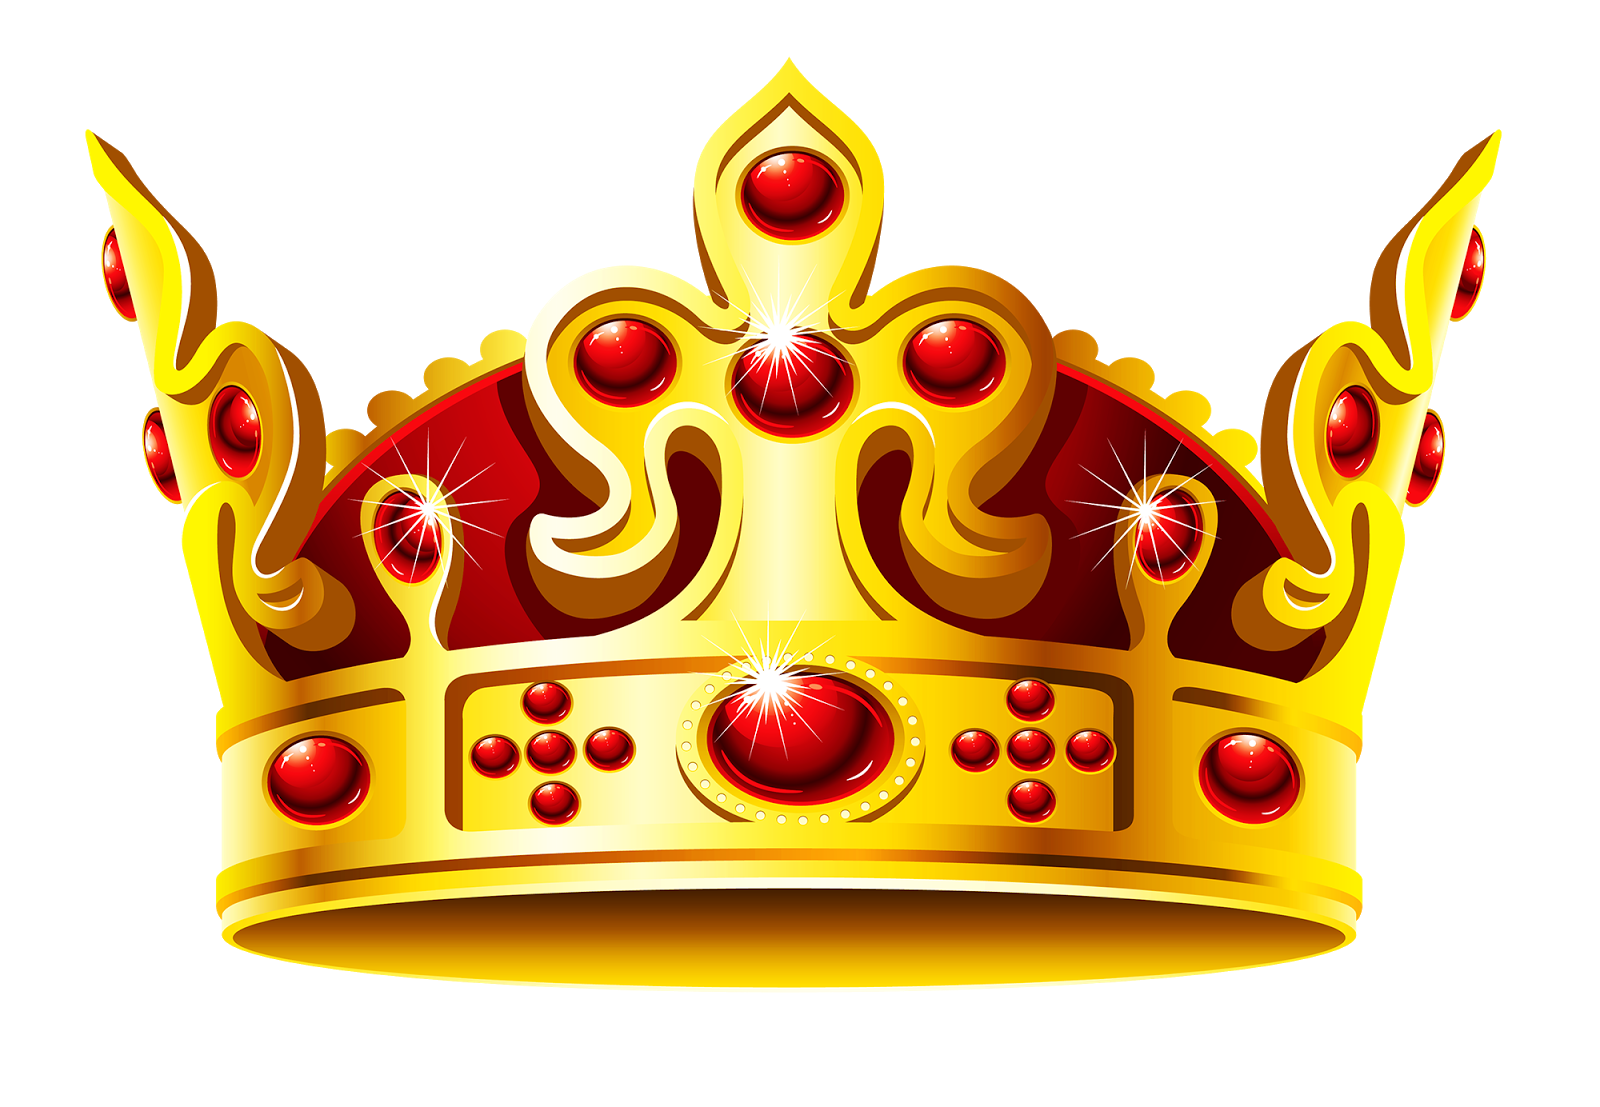 Crown Clipart at GetDrawings.com | Free for personal use Crown ... picture freeuse